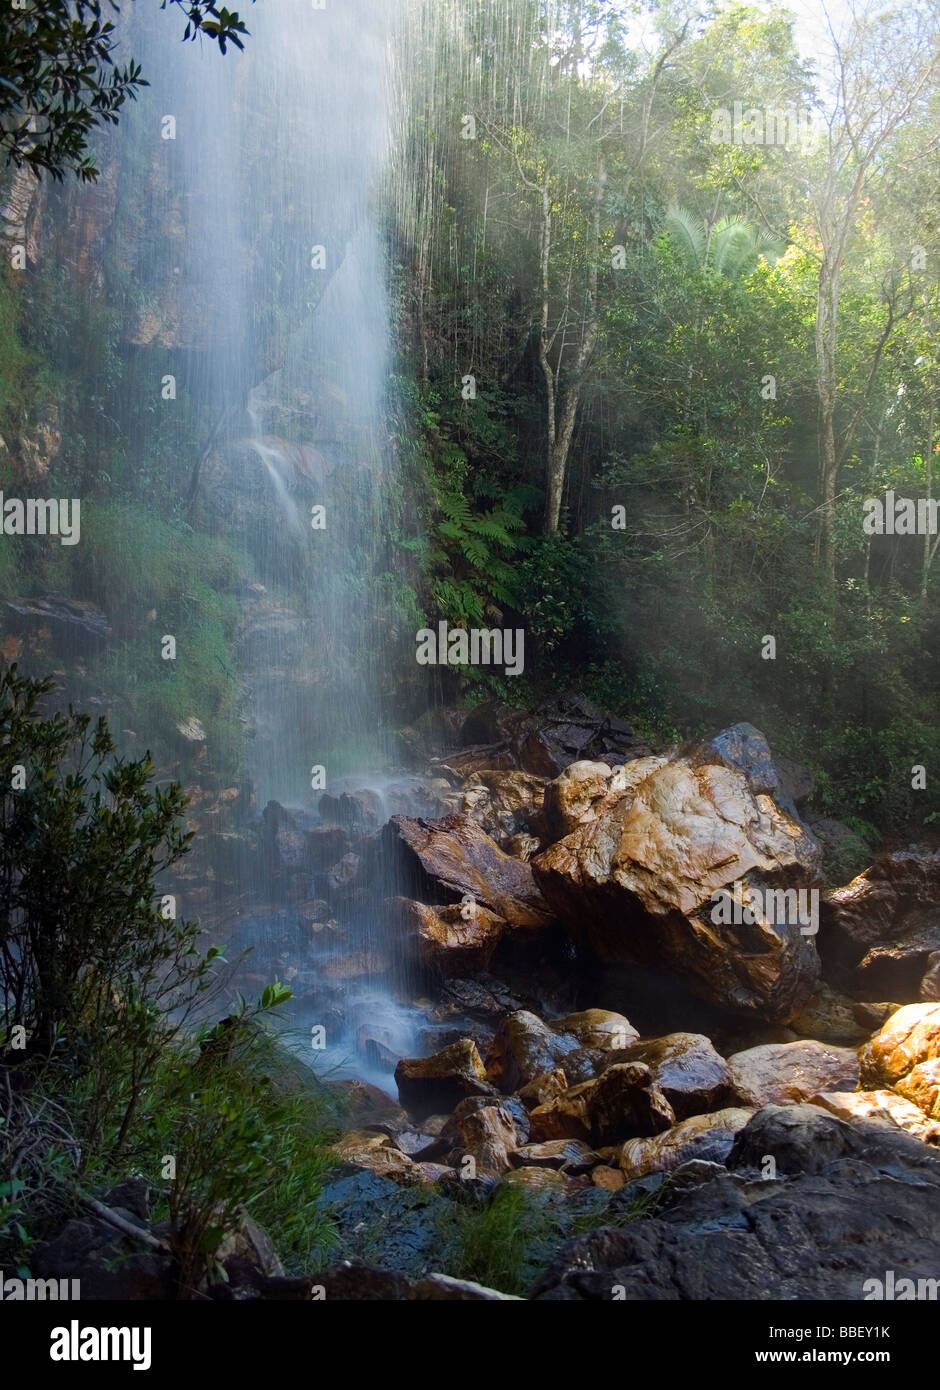 Agua Fria Waterfall Chapada dos Veadeiros Veadeiros Tableland Goias Brazil Stock Photo